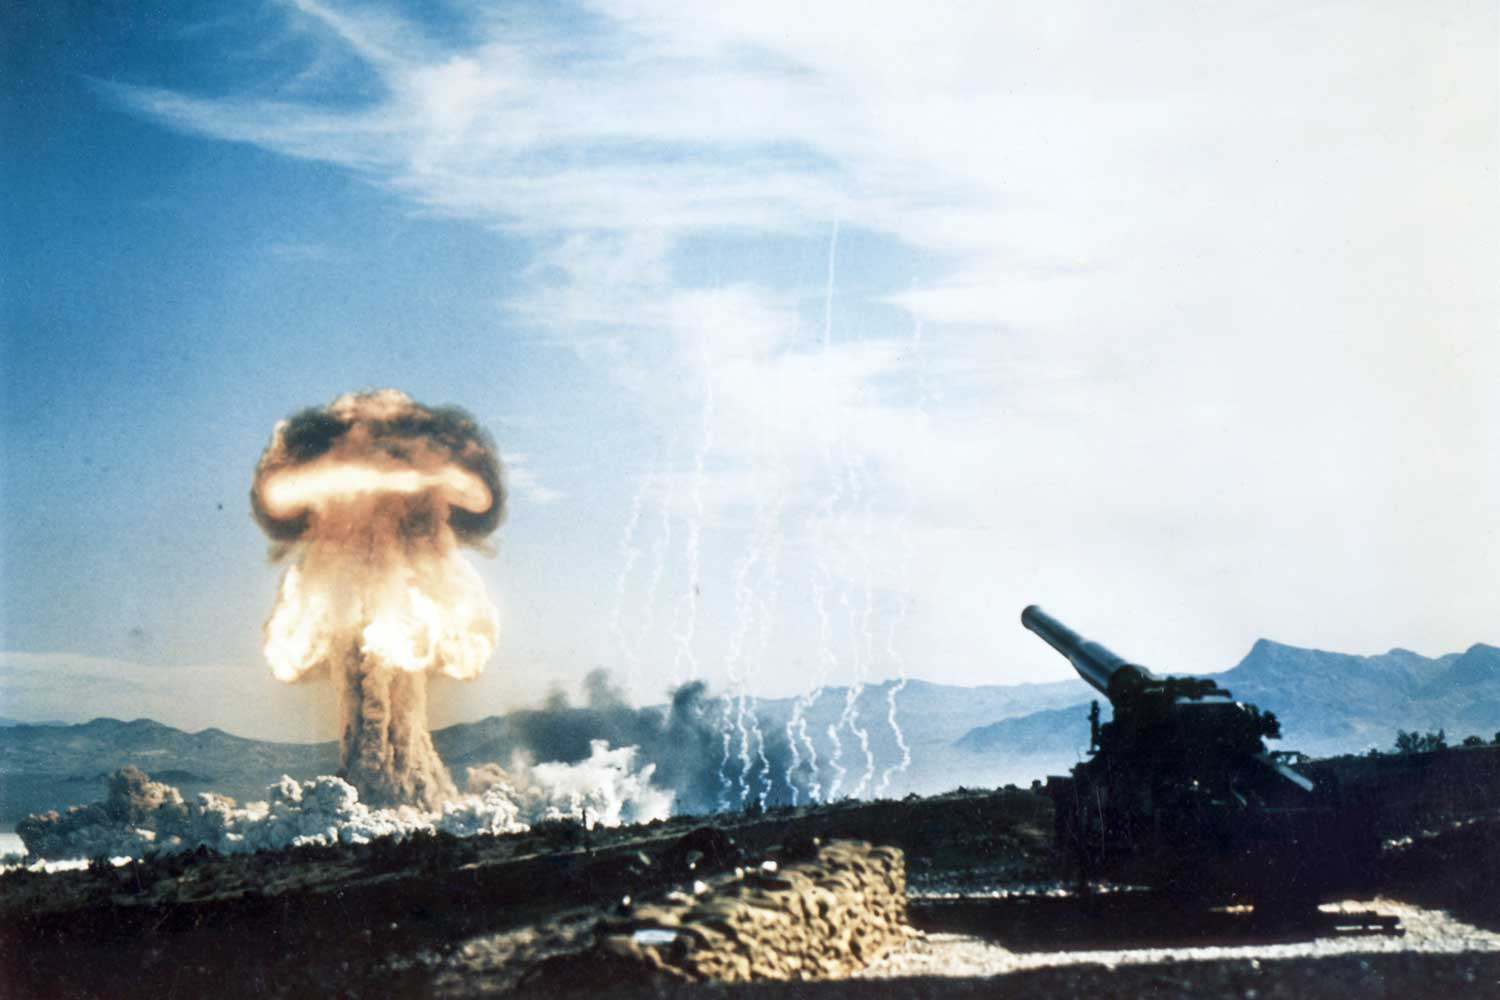 1953 test of a nuclear artillery projectile at the Nevada Test Site, as part of Operation Upshot–Knothole Grable, depicting the explosion of a nuclear artillery shell at a distance of 10 km